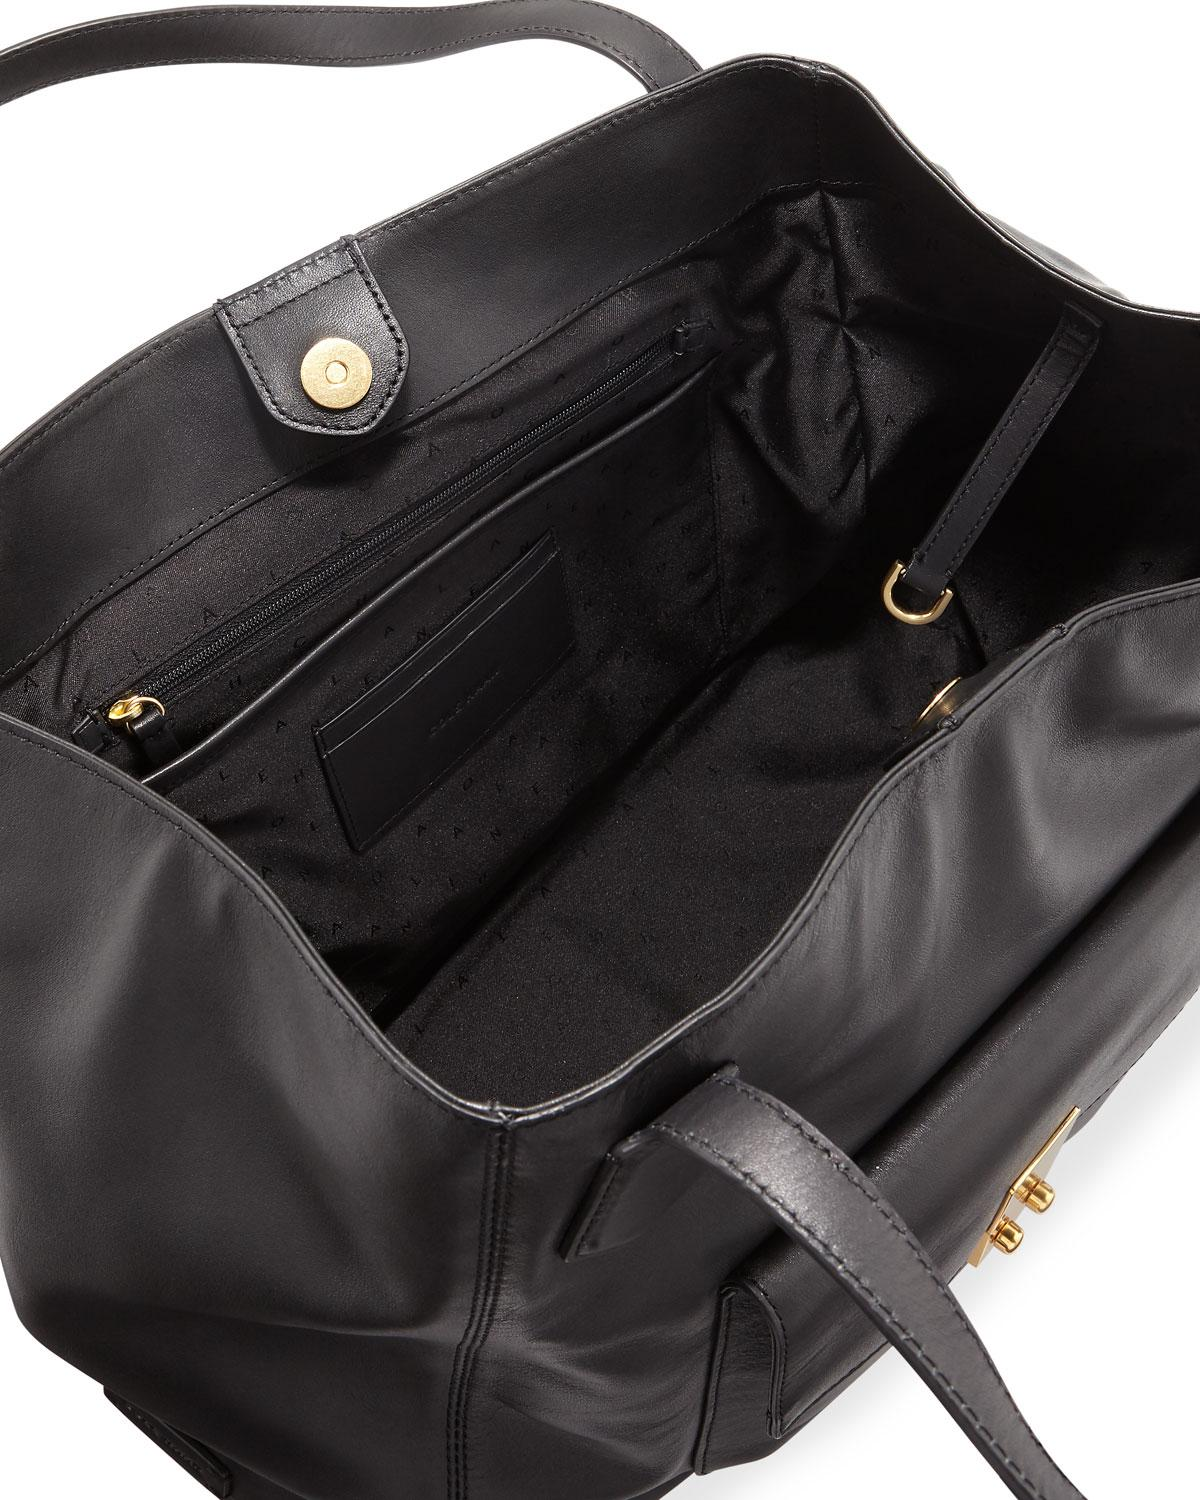 4407053ae250 Lyst - Cole Haan Allanna Work Leather Tote Bag in Black